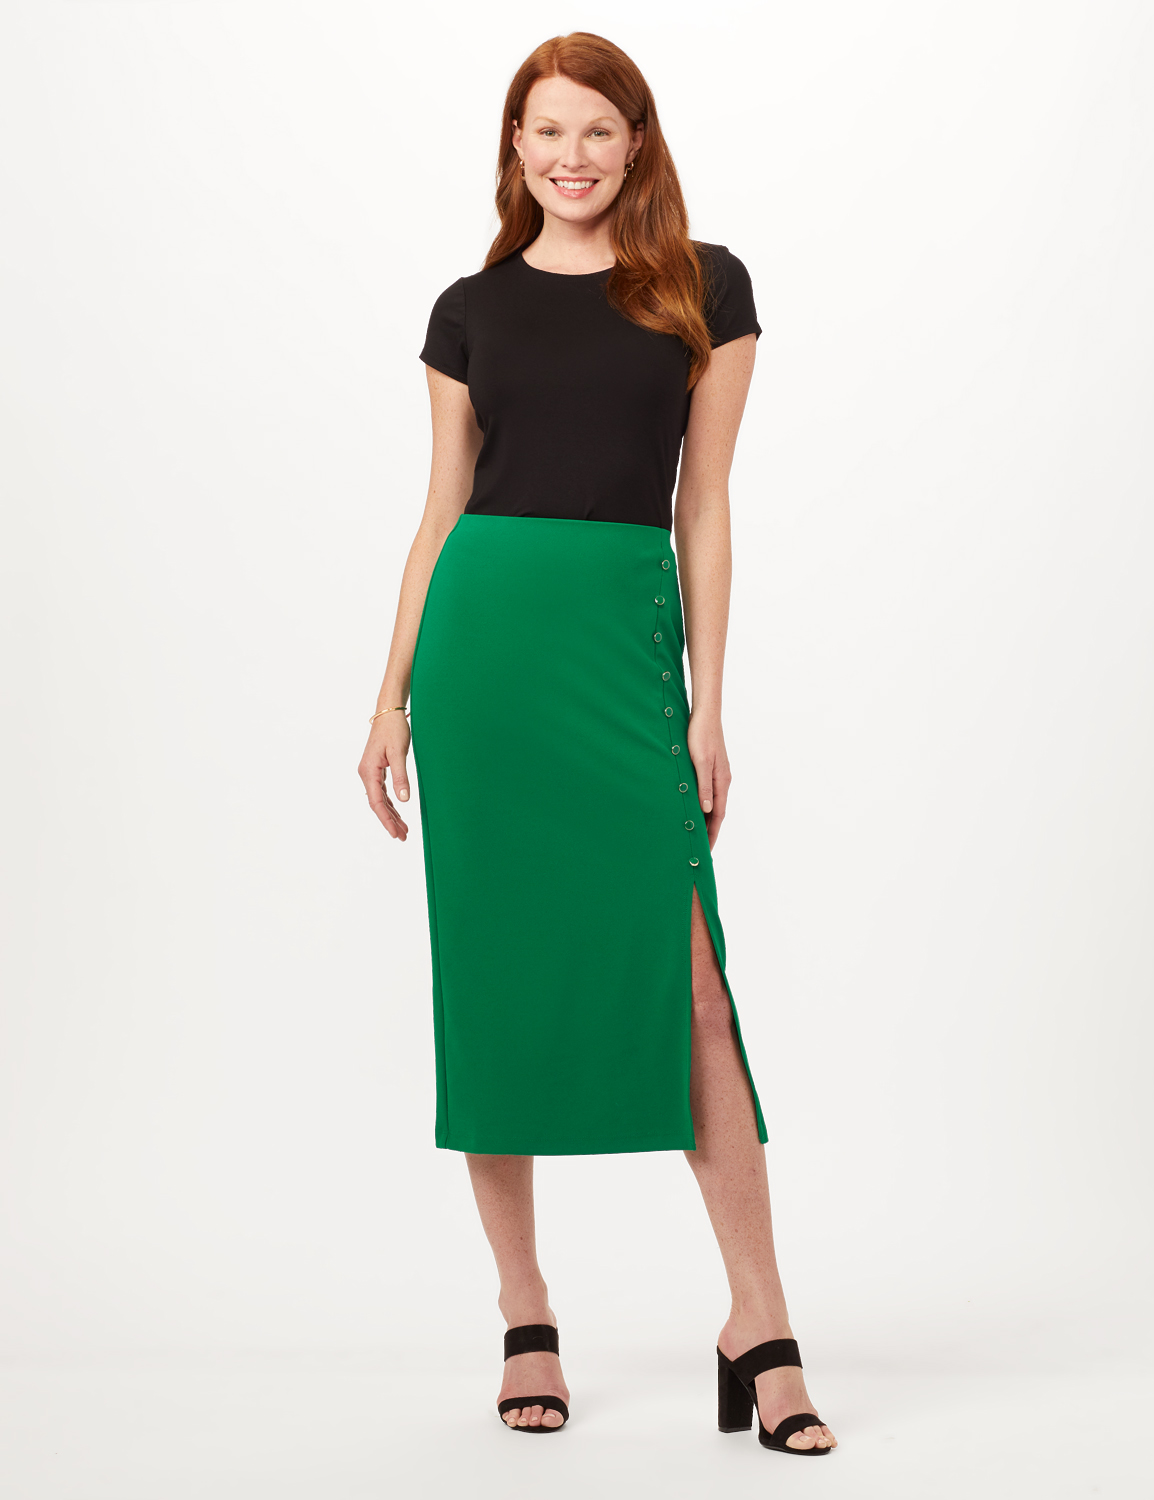 Side Slit Pull-On Pencil Skirt with Button Detail -Emerald Green - Front